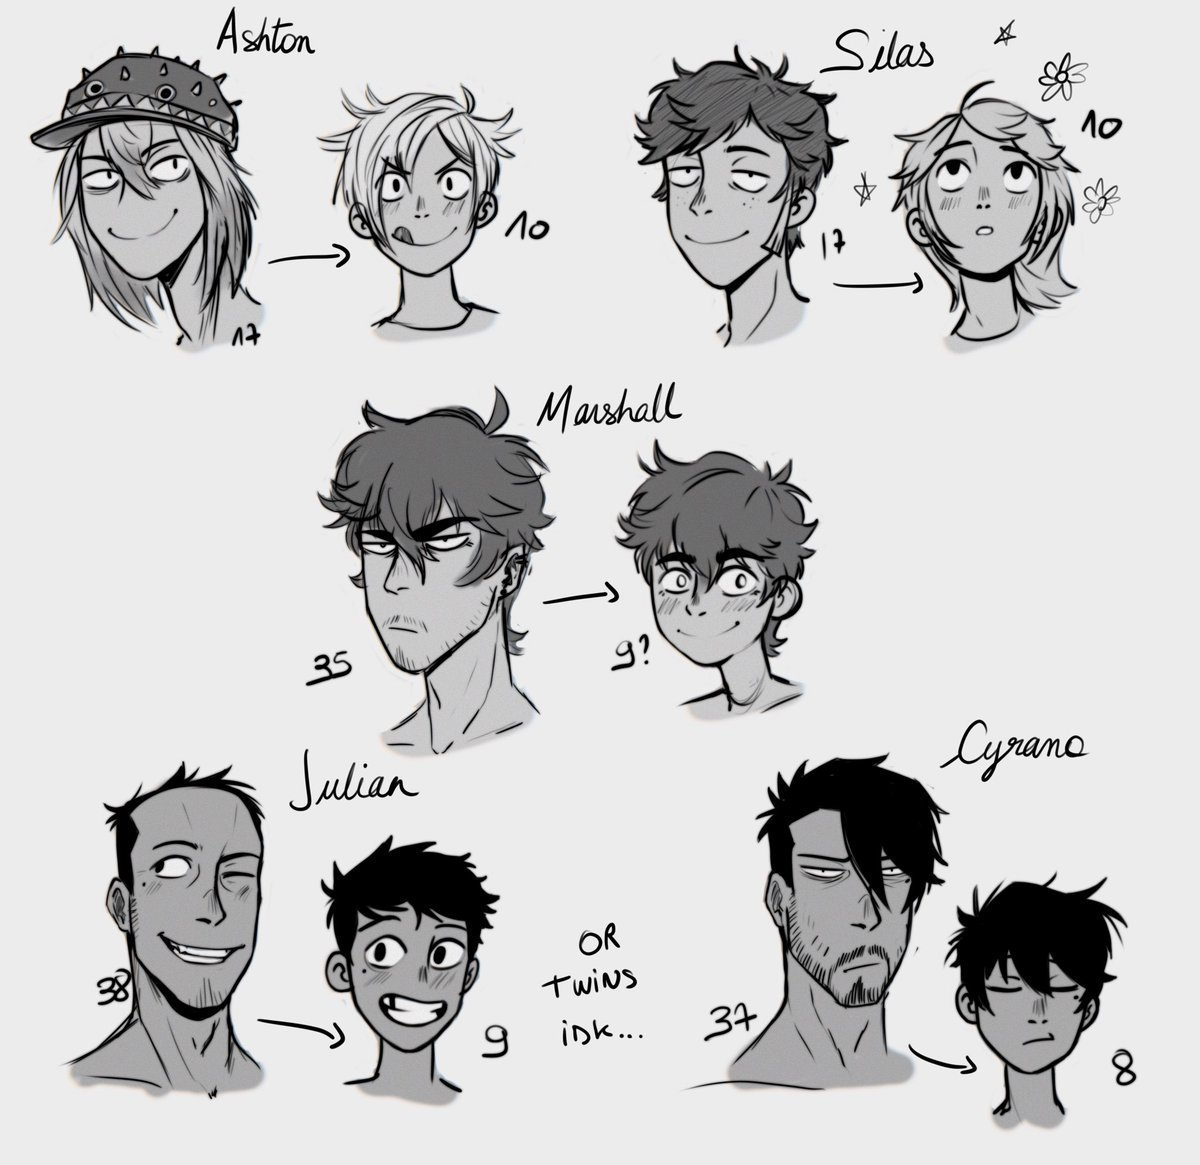 Some of my oc but younger haha ! #drawing #oc #originalcharacters #sketch #doodle https://t.co/4kjvf2YQJ9